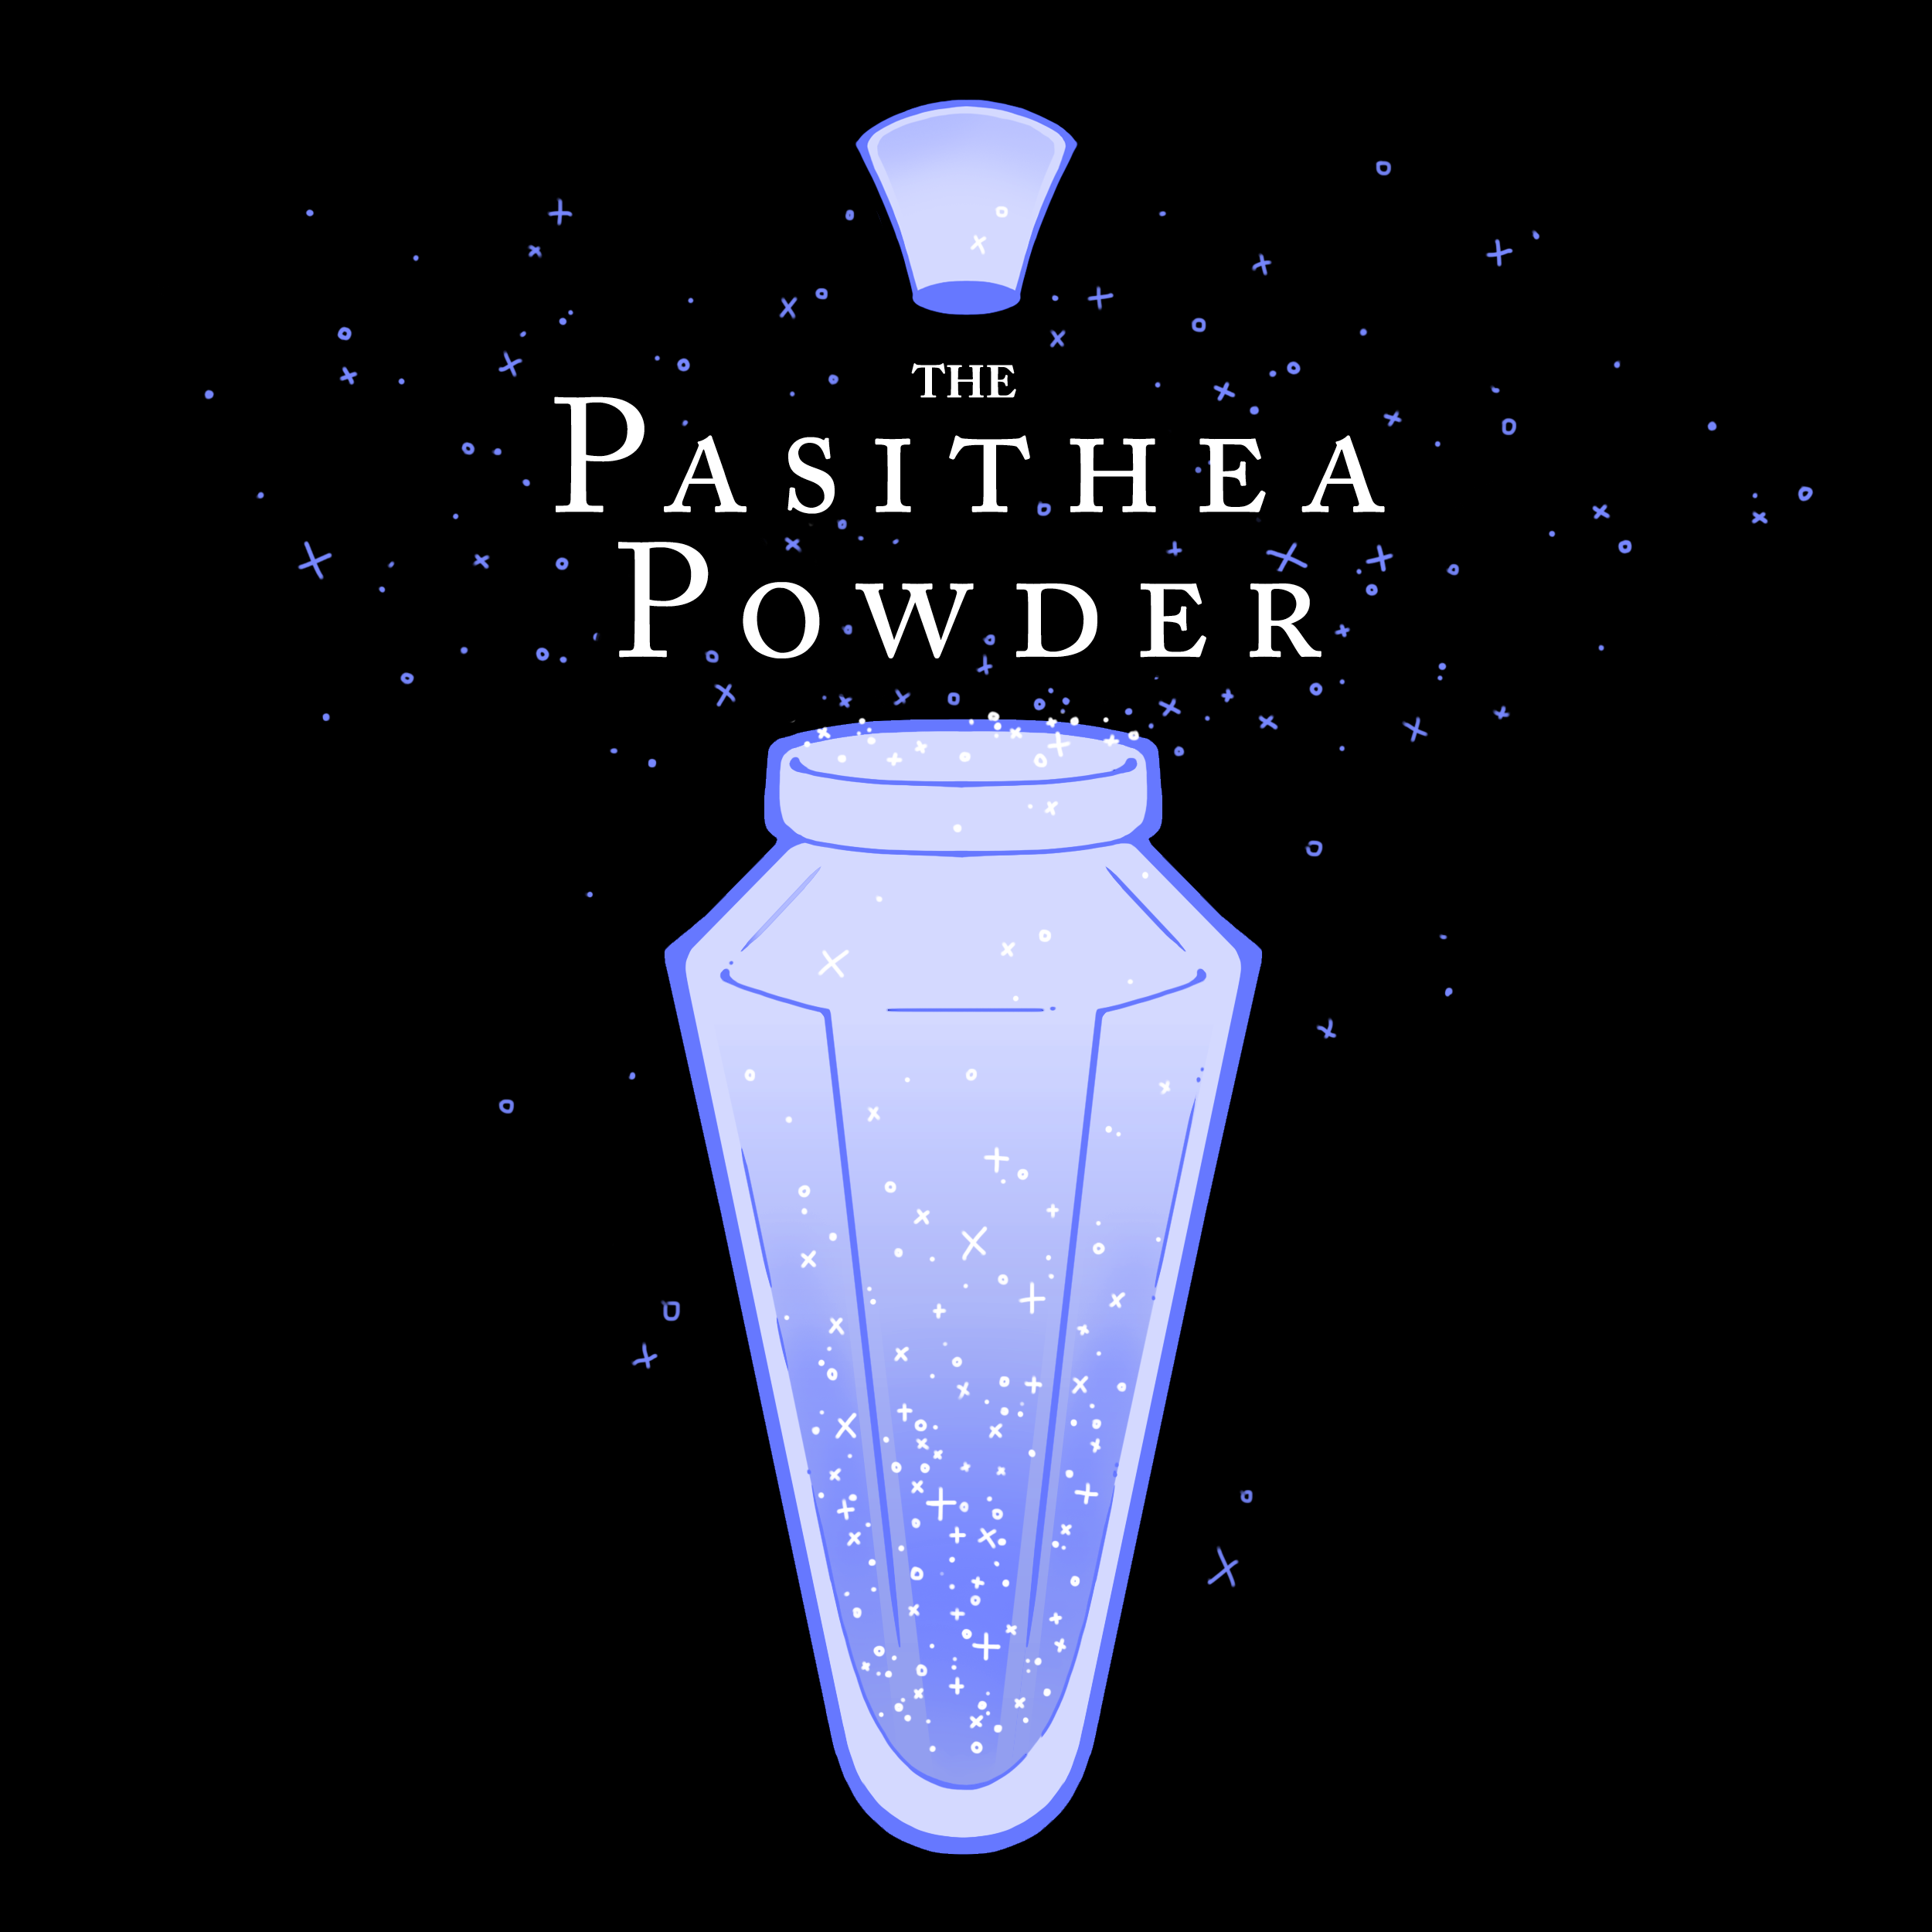 The Pasithea Powder logo. A light-purple vial opens over a black background, releasing both the podcast title in a serif font and a small explosion of dark purple stars.